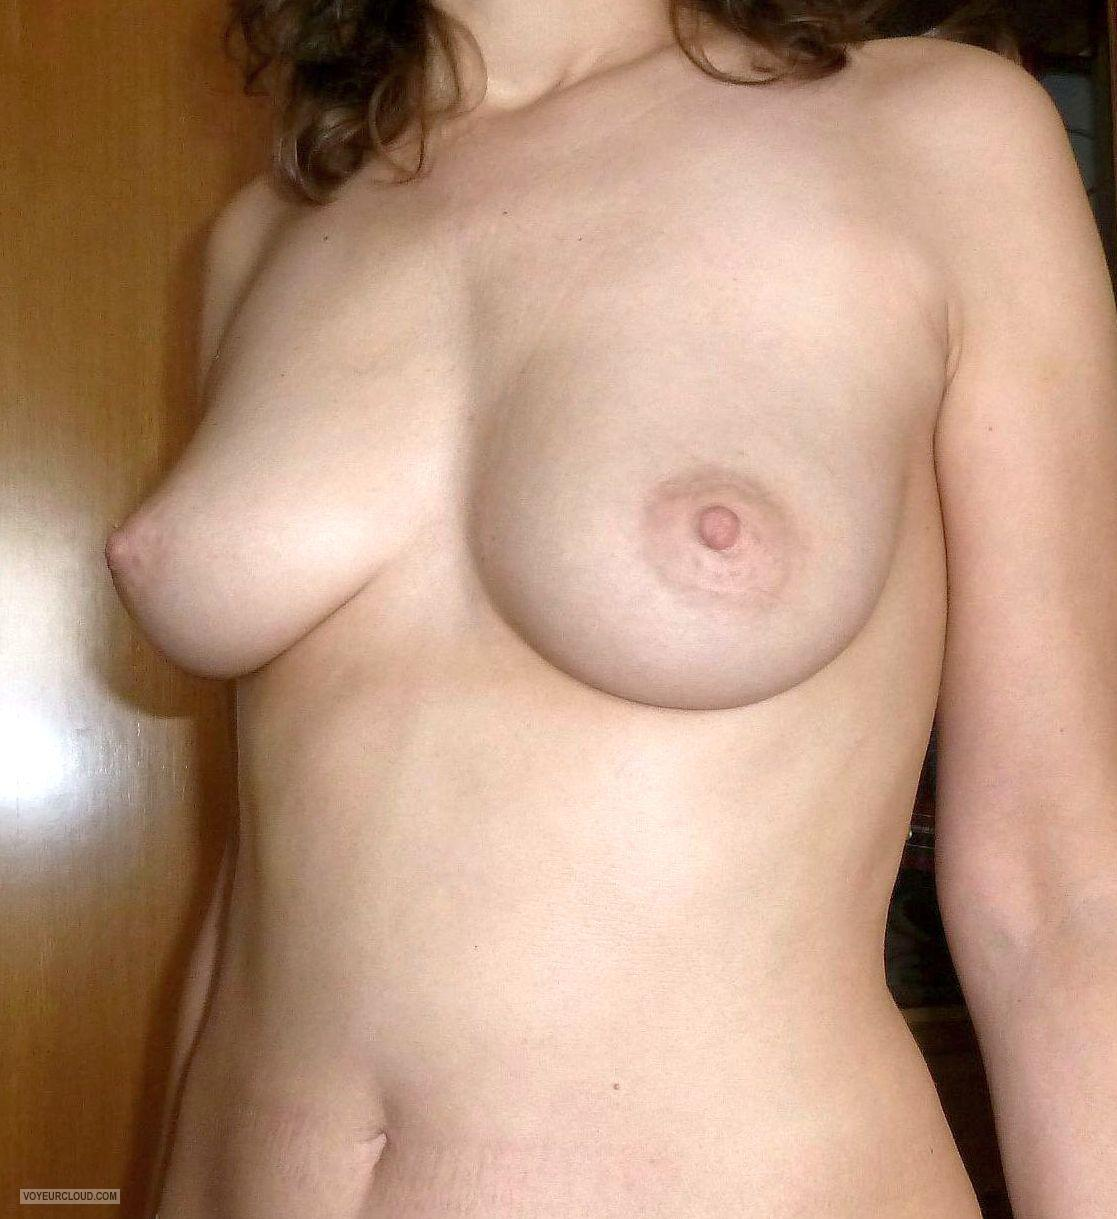 Medium Tits Of My Girlfriend Rebeca